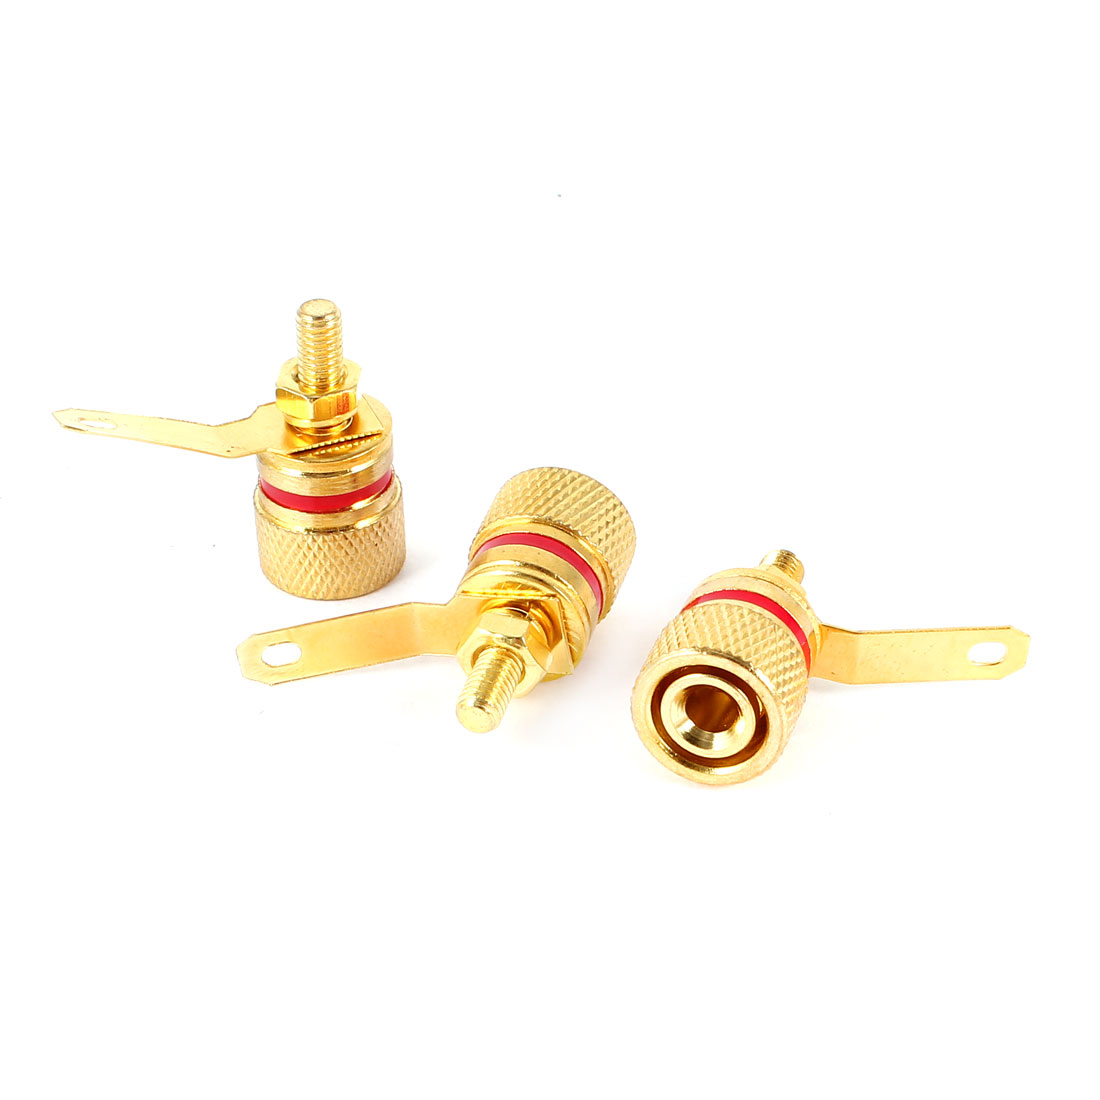 3 Pcs Amplifier 4mm Banana Plug Socket 3.8mm Thread Binding Post Gold Tone Red